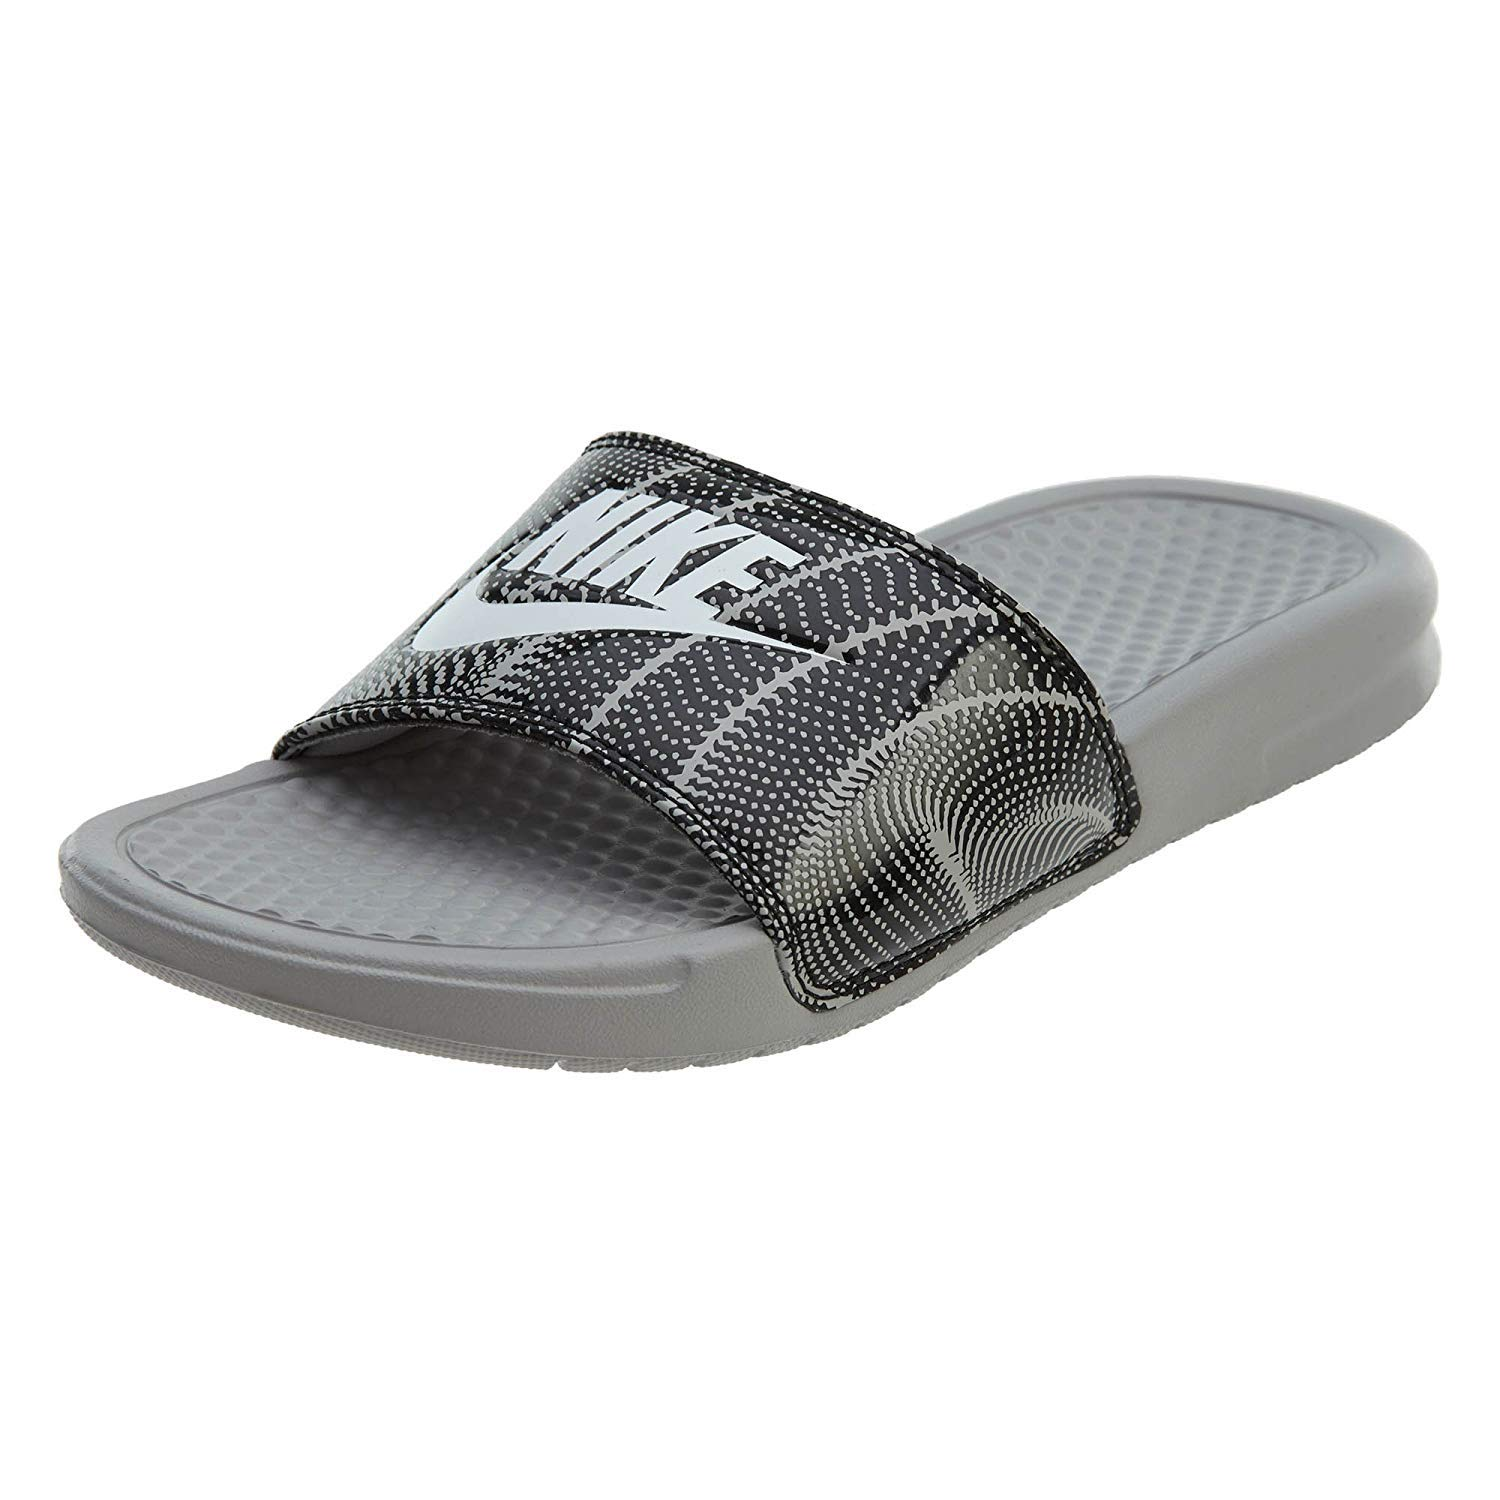 wholesale dealer 76765 9dbbd Amazon.com   NIKE Women s Benassi Just Do It. Sandal Black   Sandals